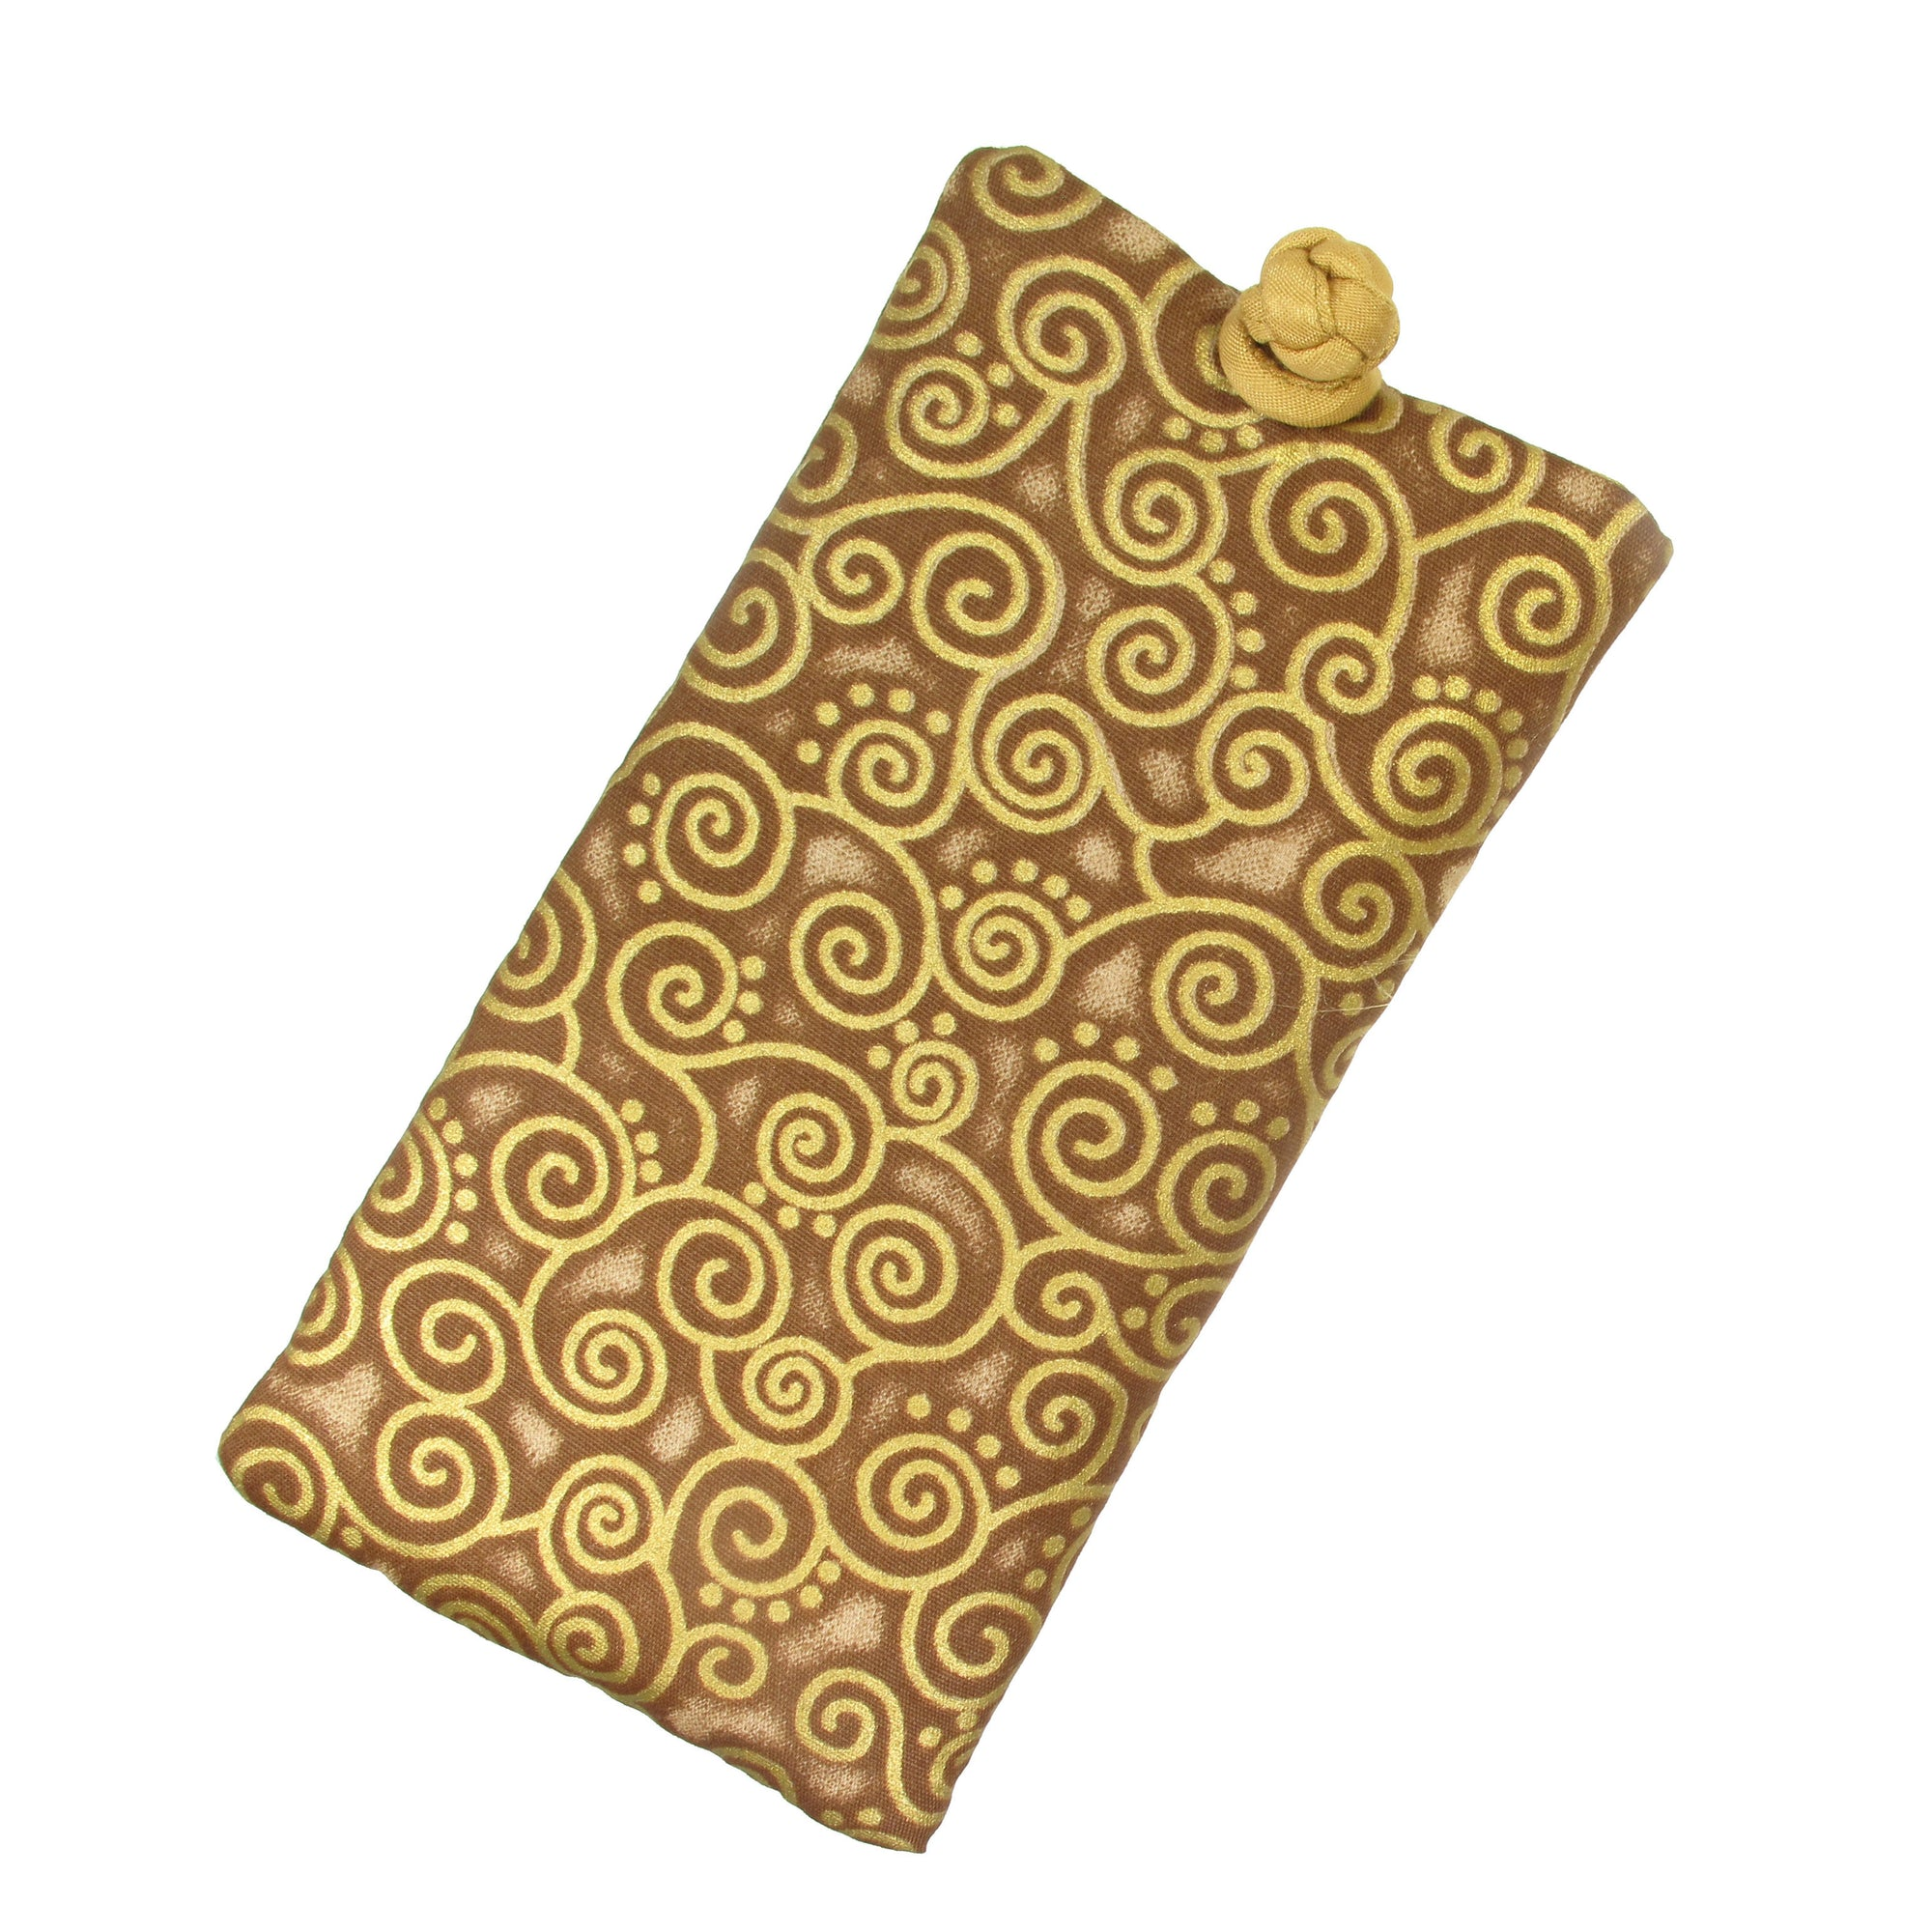 Soft Eyeglass Case (Sunglasses Pouch), Knot and Loop Closure, Cotton and Silk, Gold